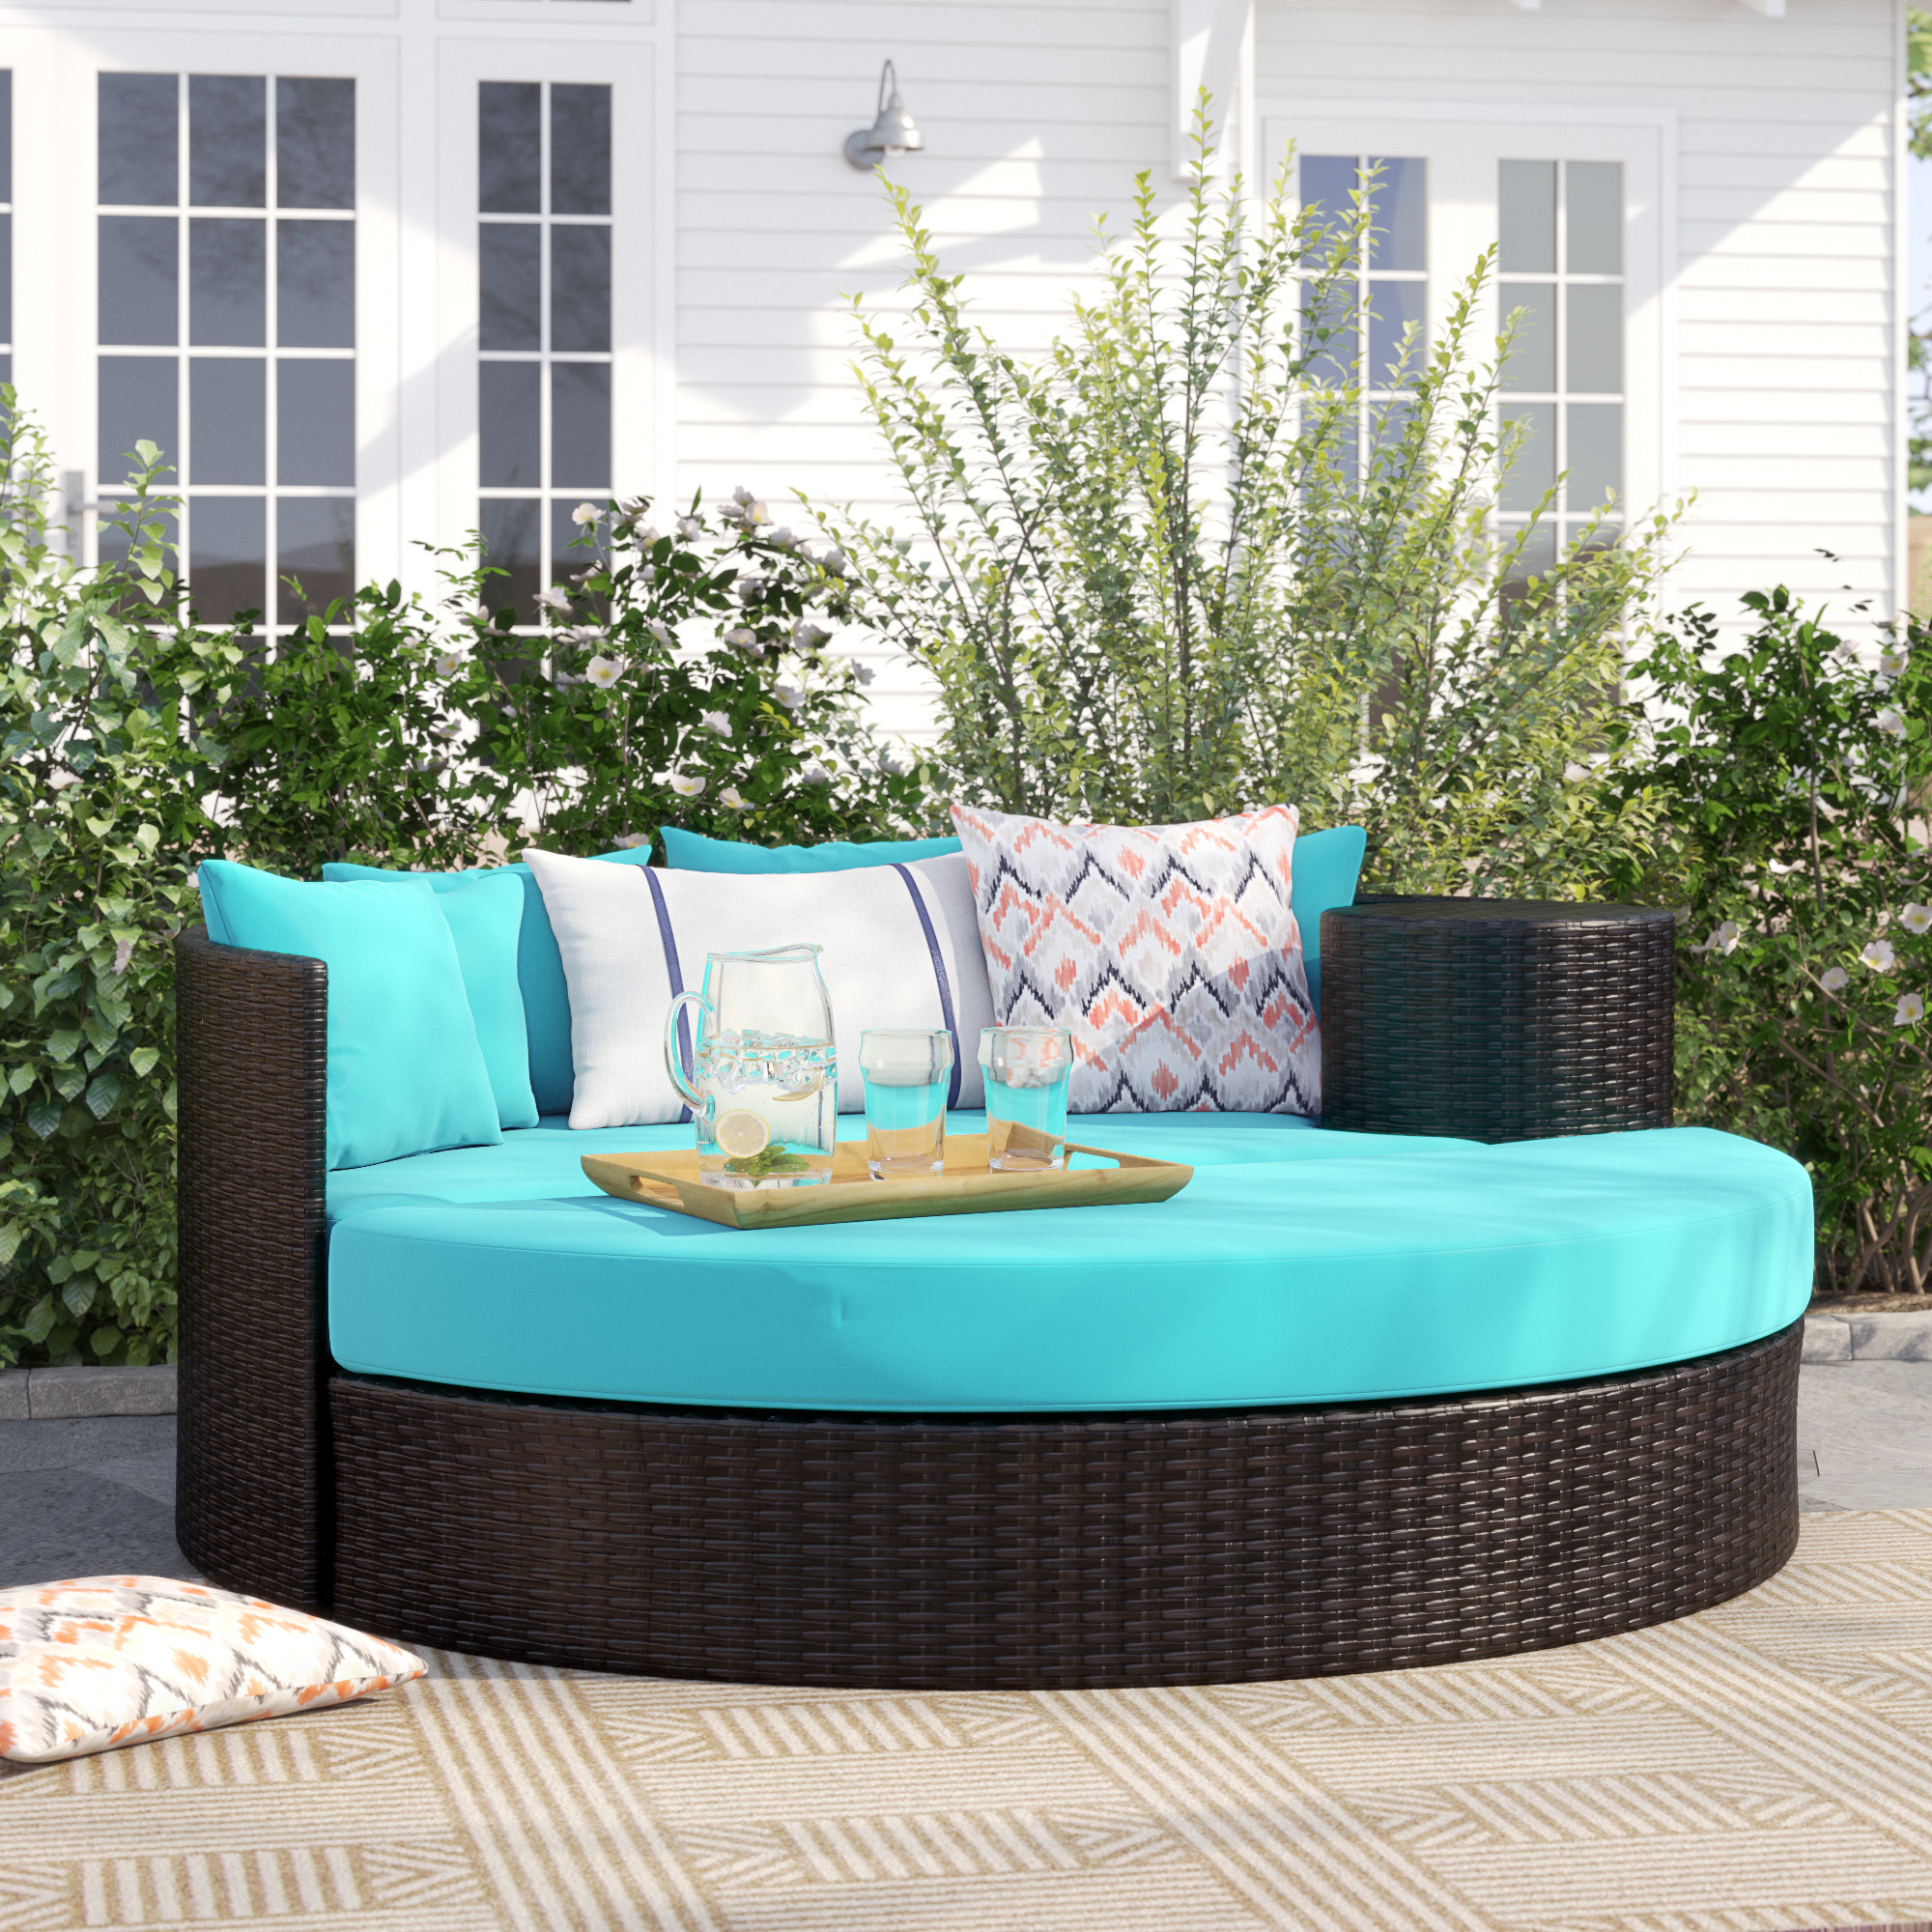 Tripp Patio Daybeds With Cushions Inside 2019 Freeport Patio Daybed With Cushion (View 3 of 20)